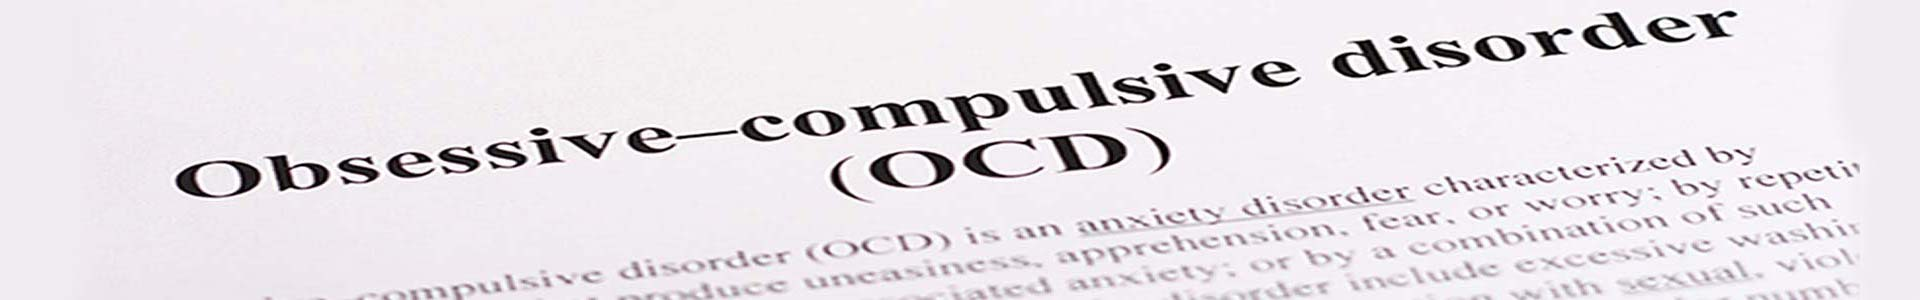 Hypnotherapy For Obsessive Compulsive Disorder (OCD)